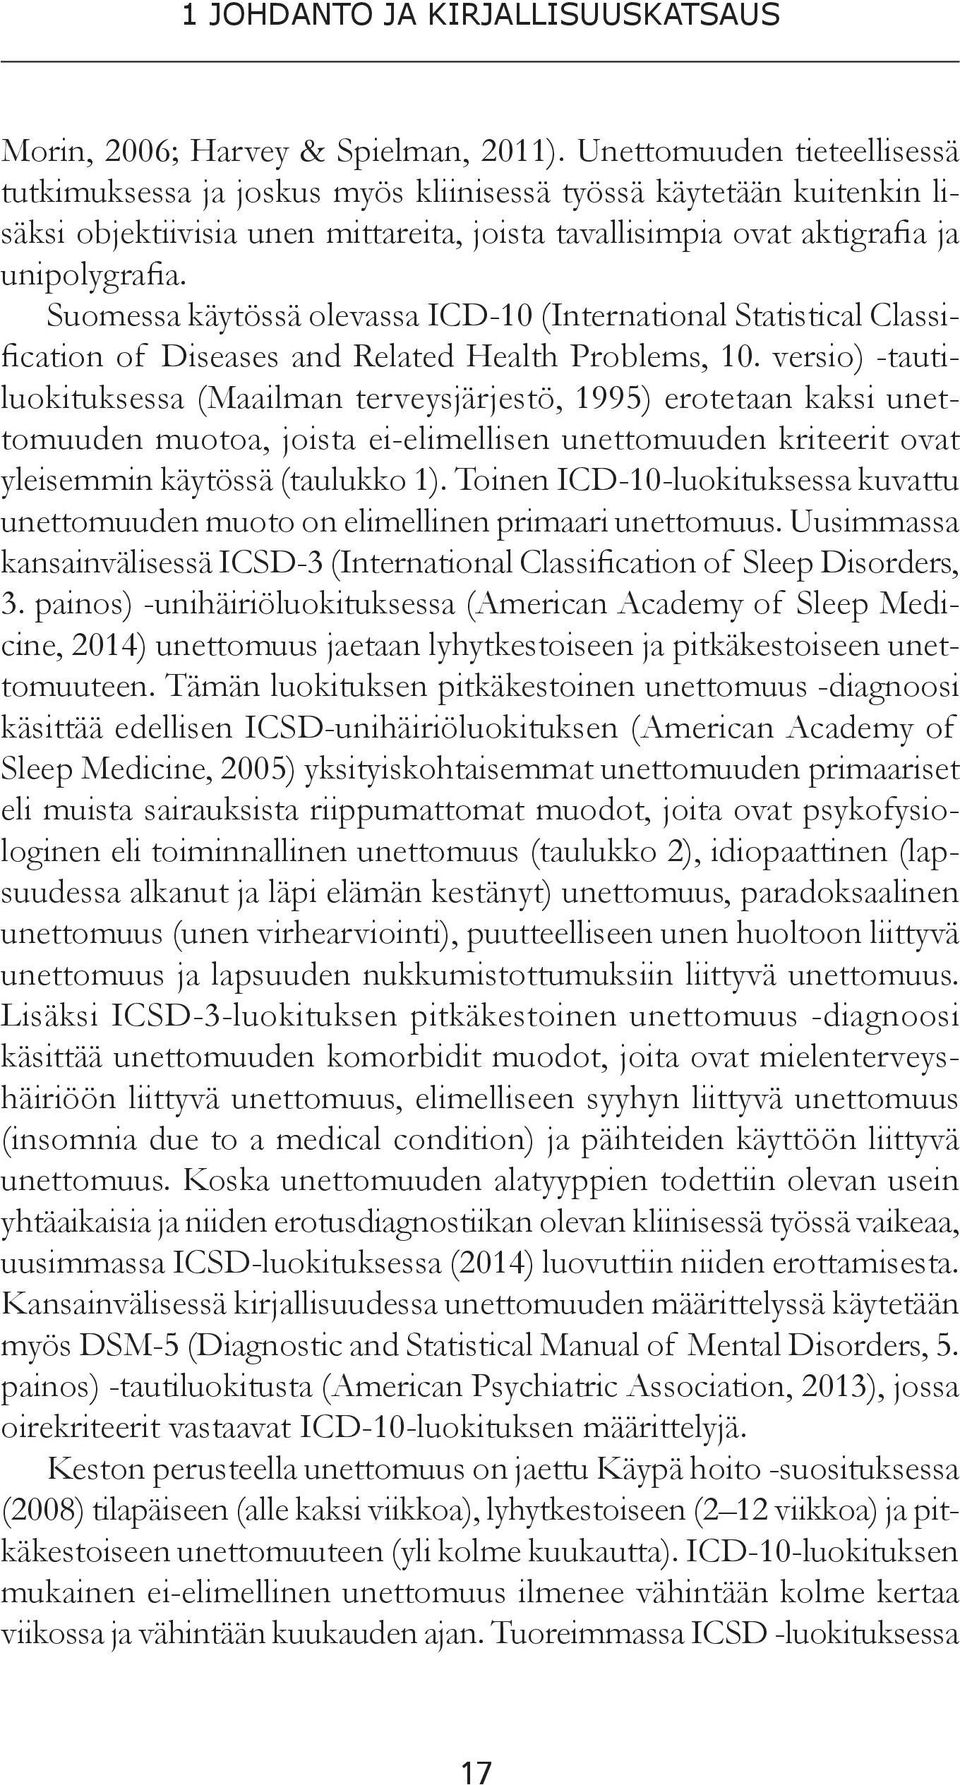 Suomessa käytössä olevassa ICD-10 (International Statistical Classification of Diseases and Related Health Problems, 10.